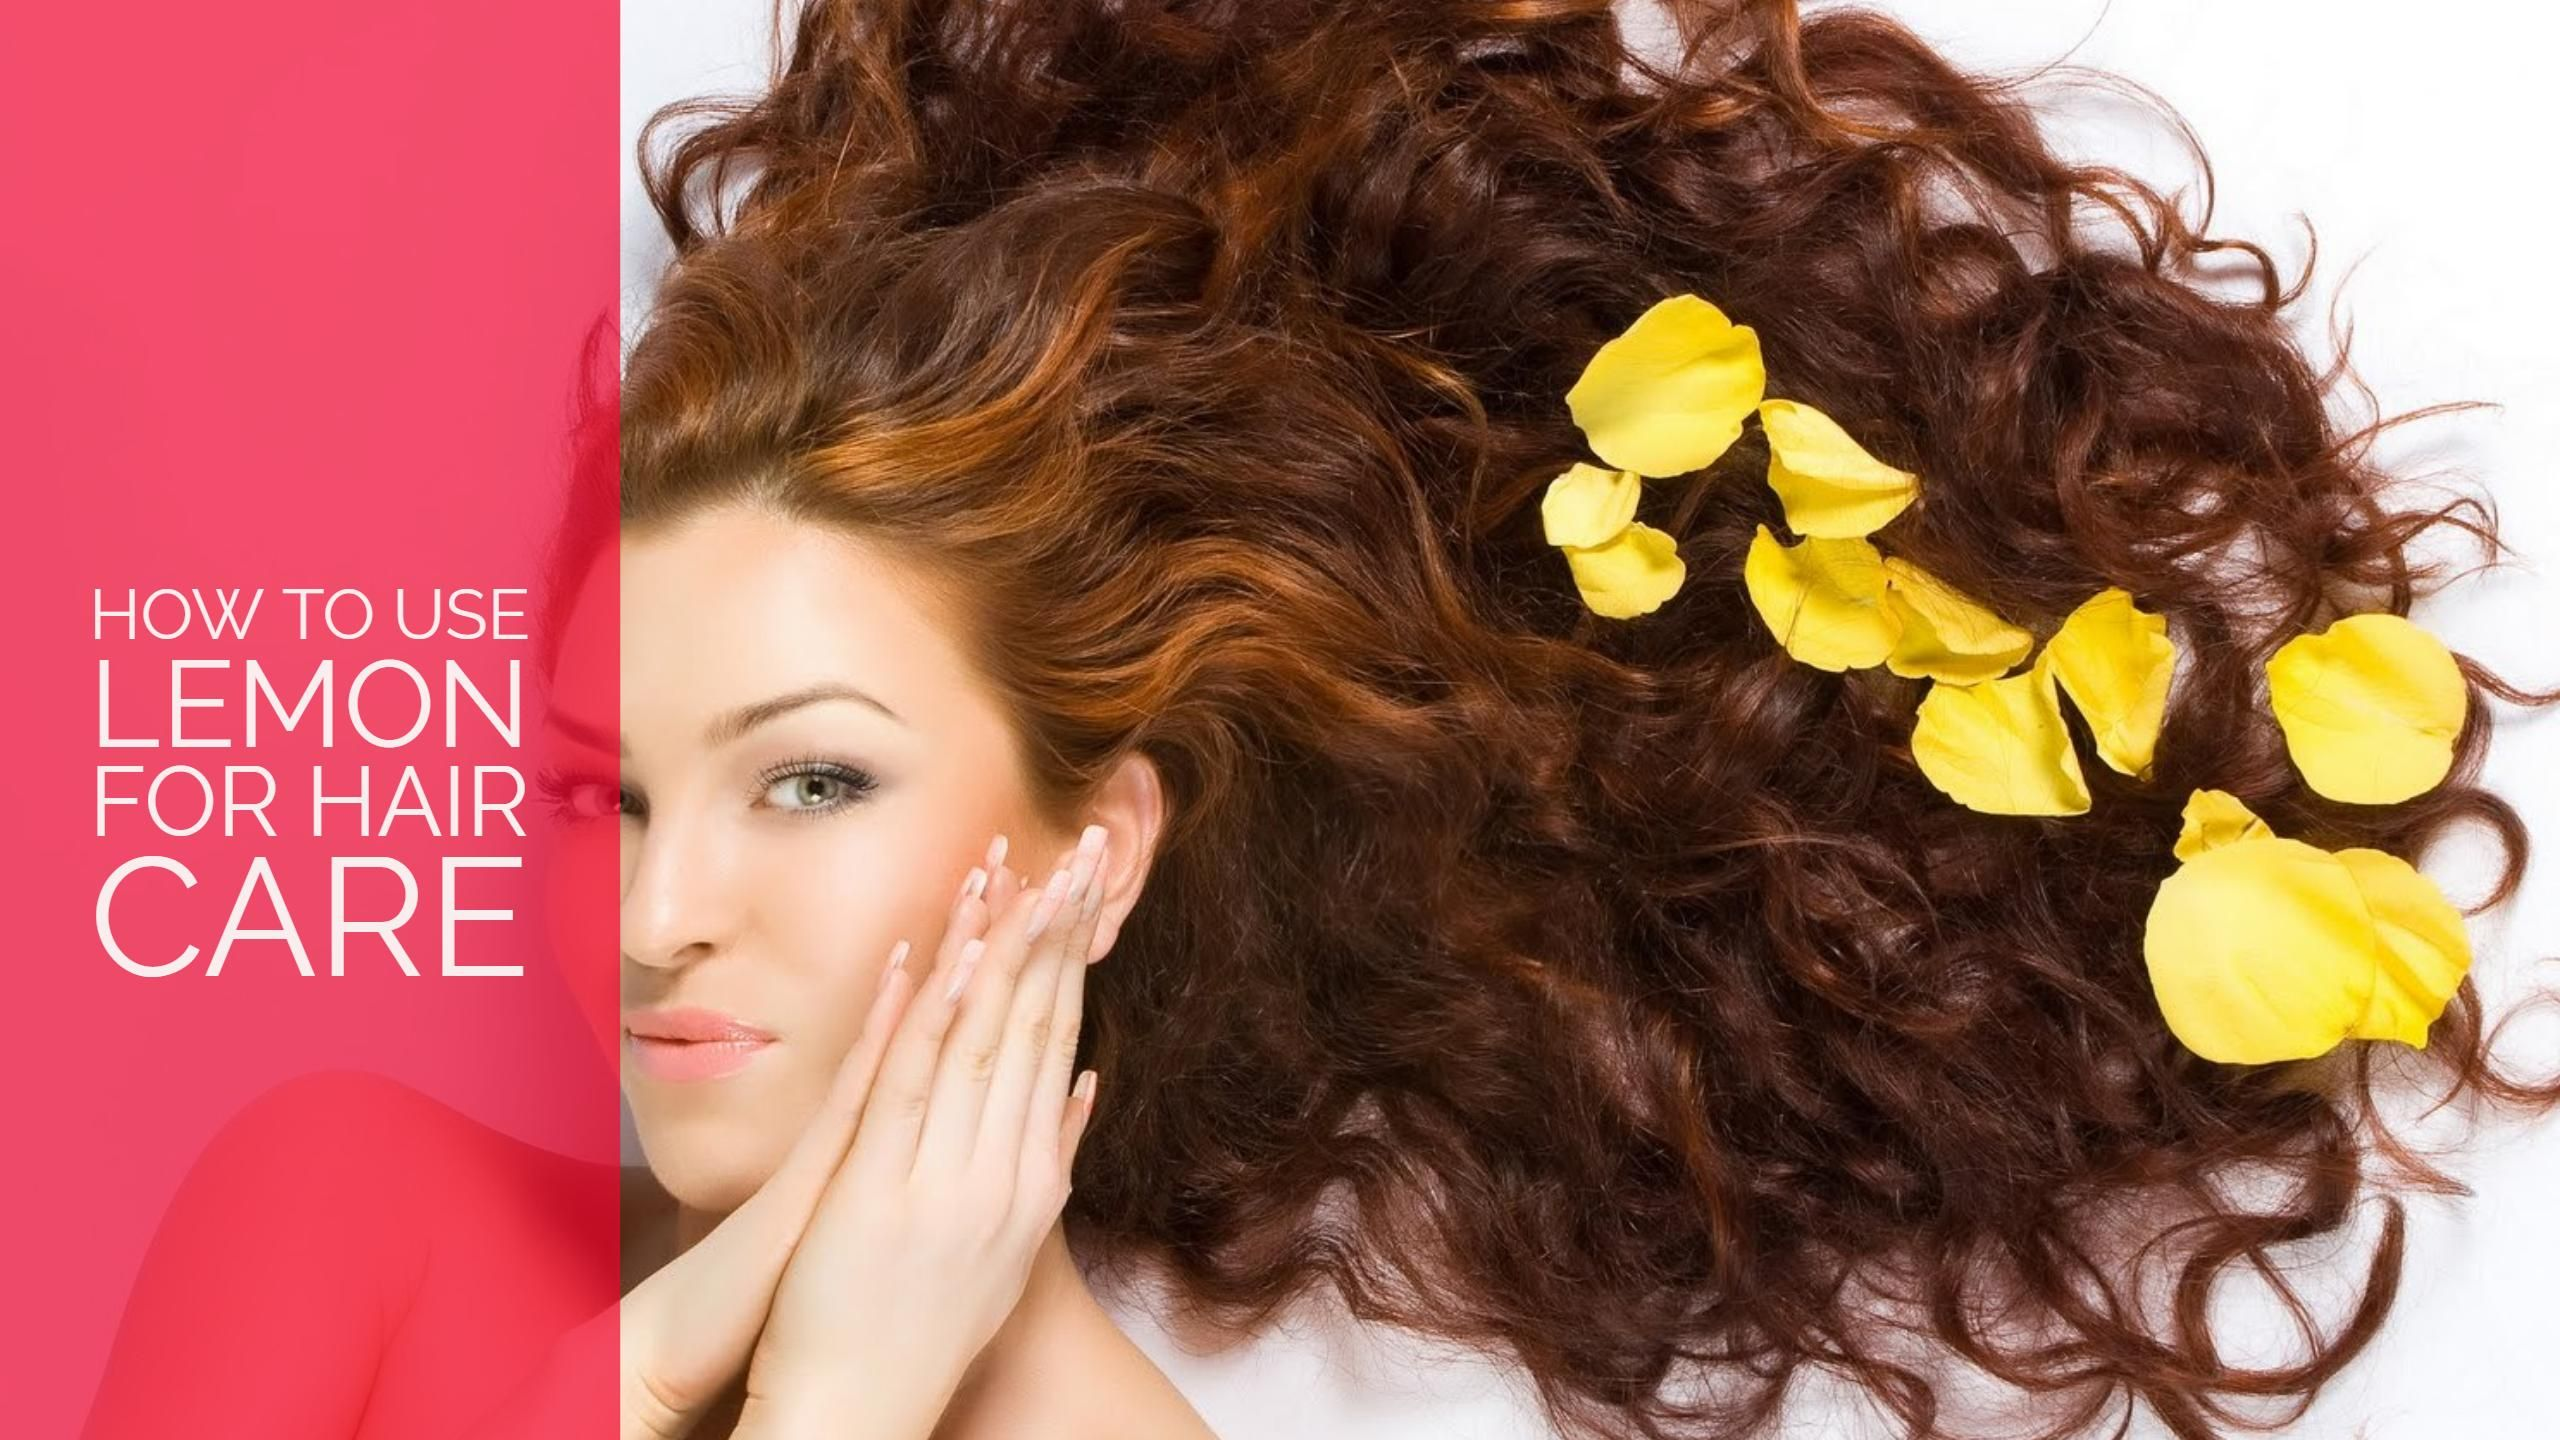 Lemon has become a common ingredient in not only in your kitchen but also in our lifestyle that is used to treat many health, hair and beauty problems with its amazing benefits.